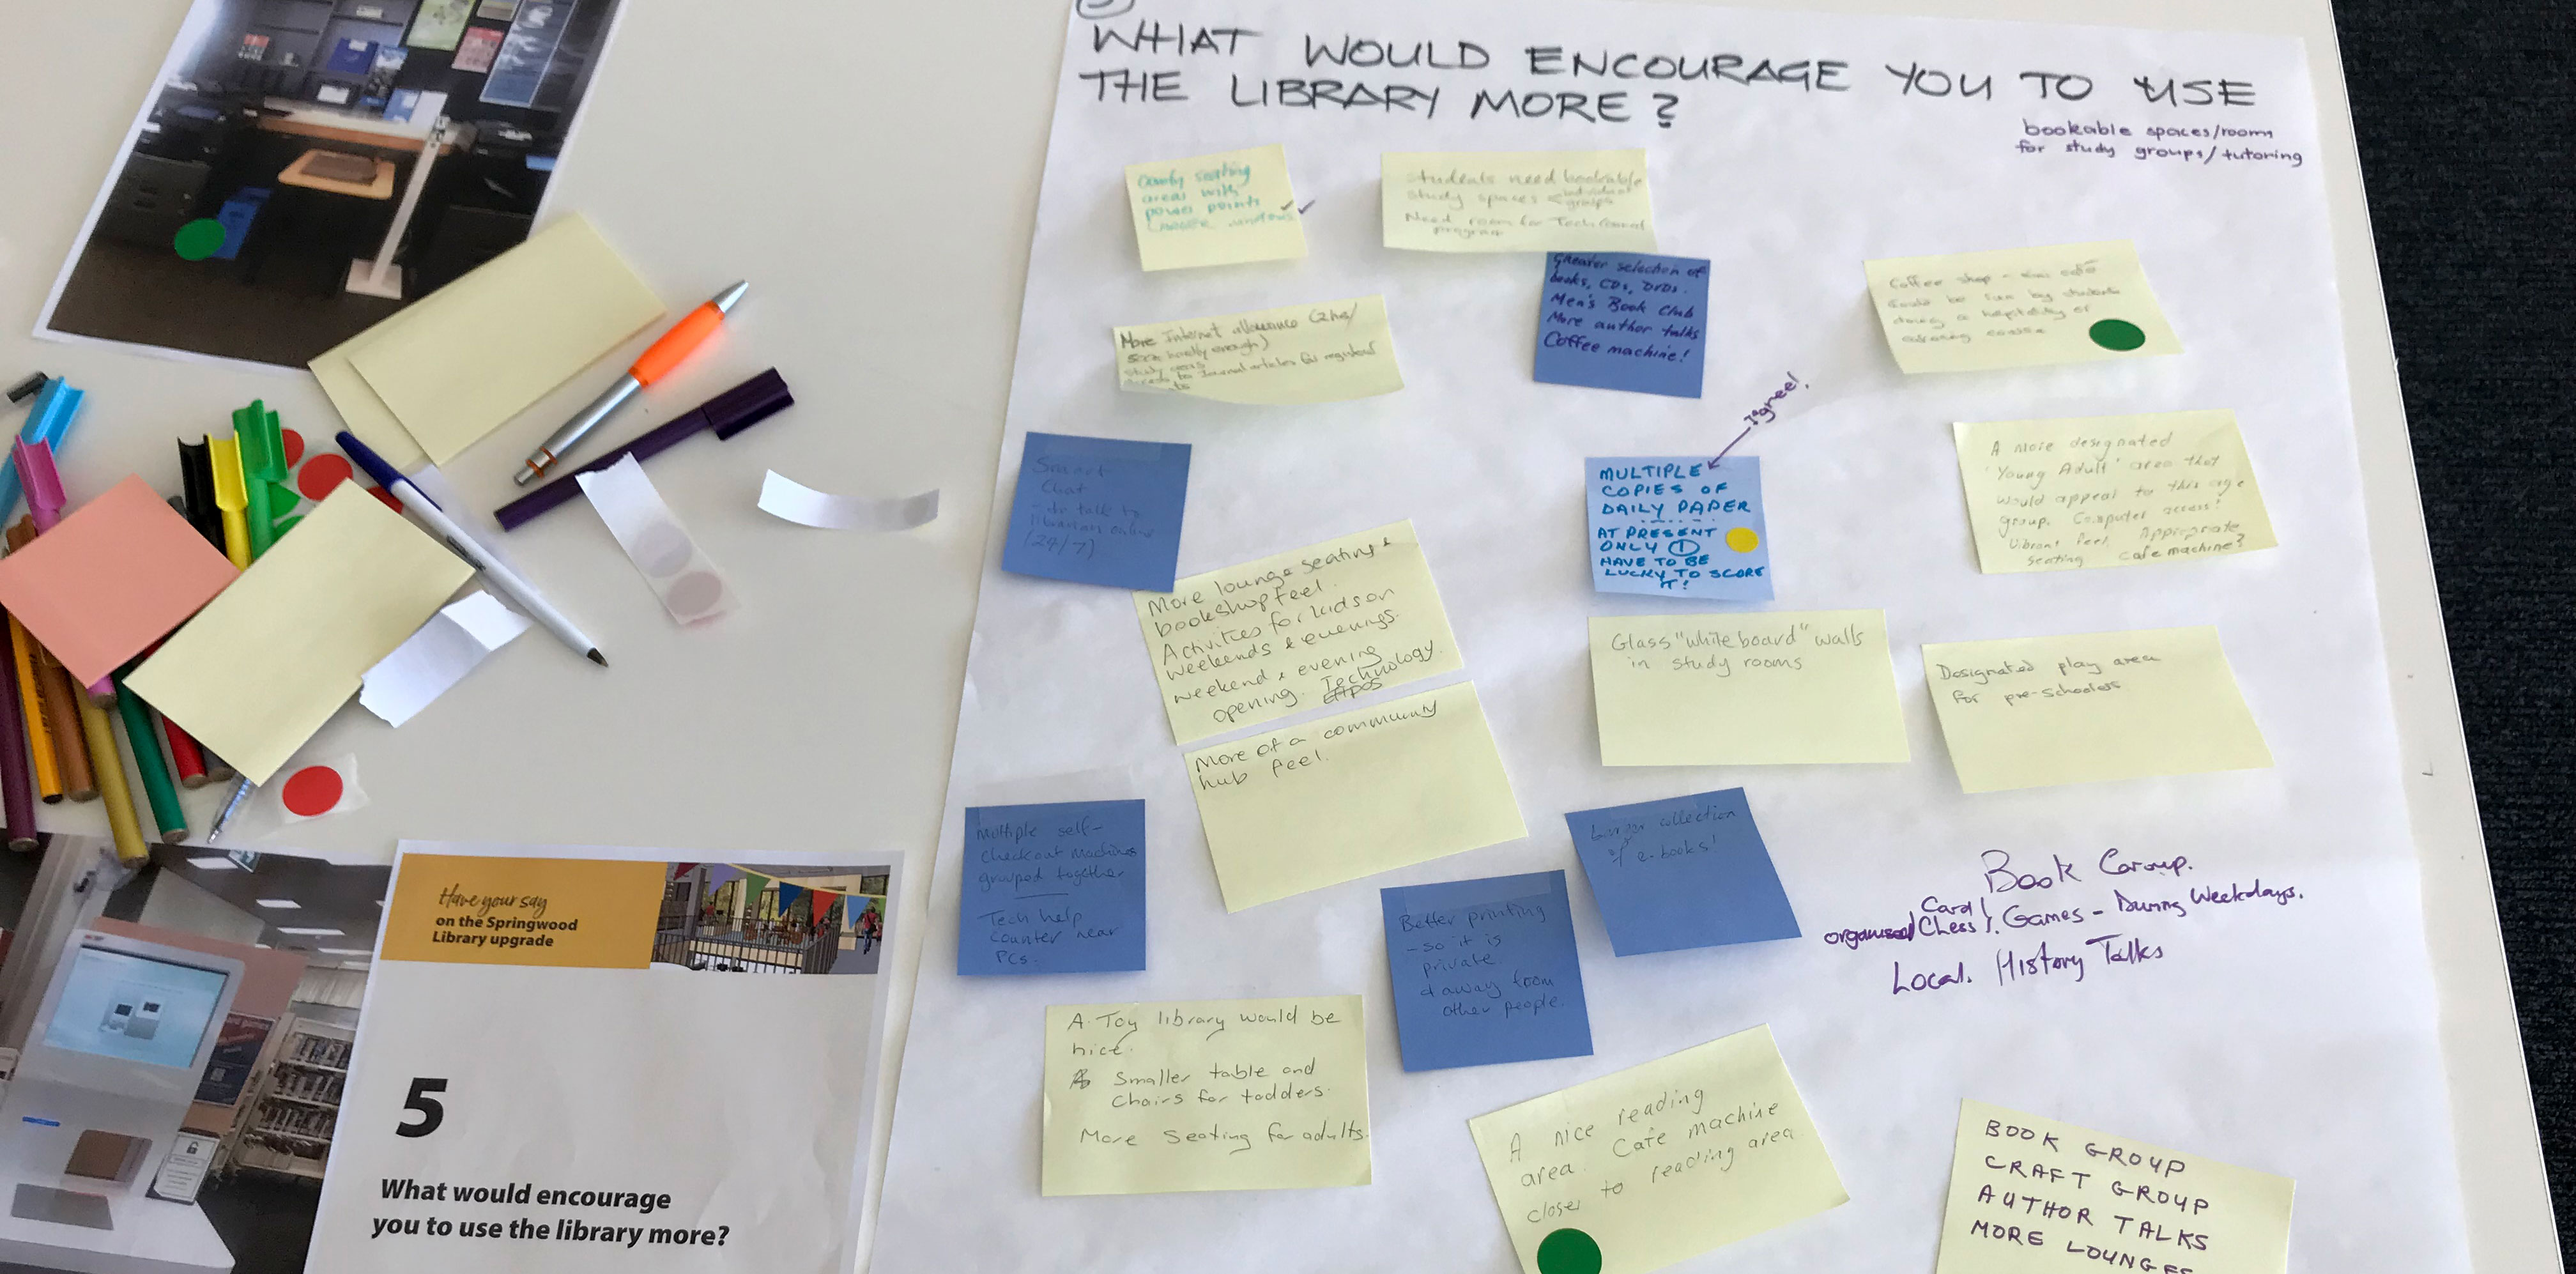 A question board for those who attended the community consultation event for the Springwood Library upgrade